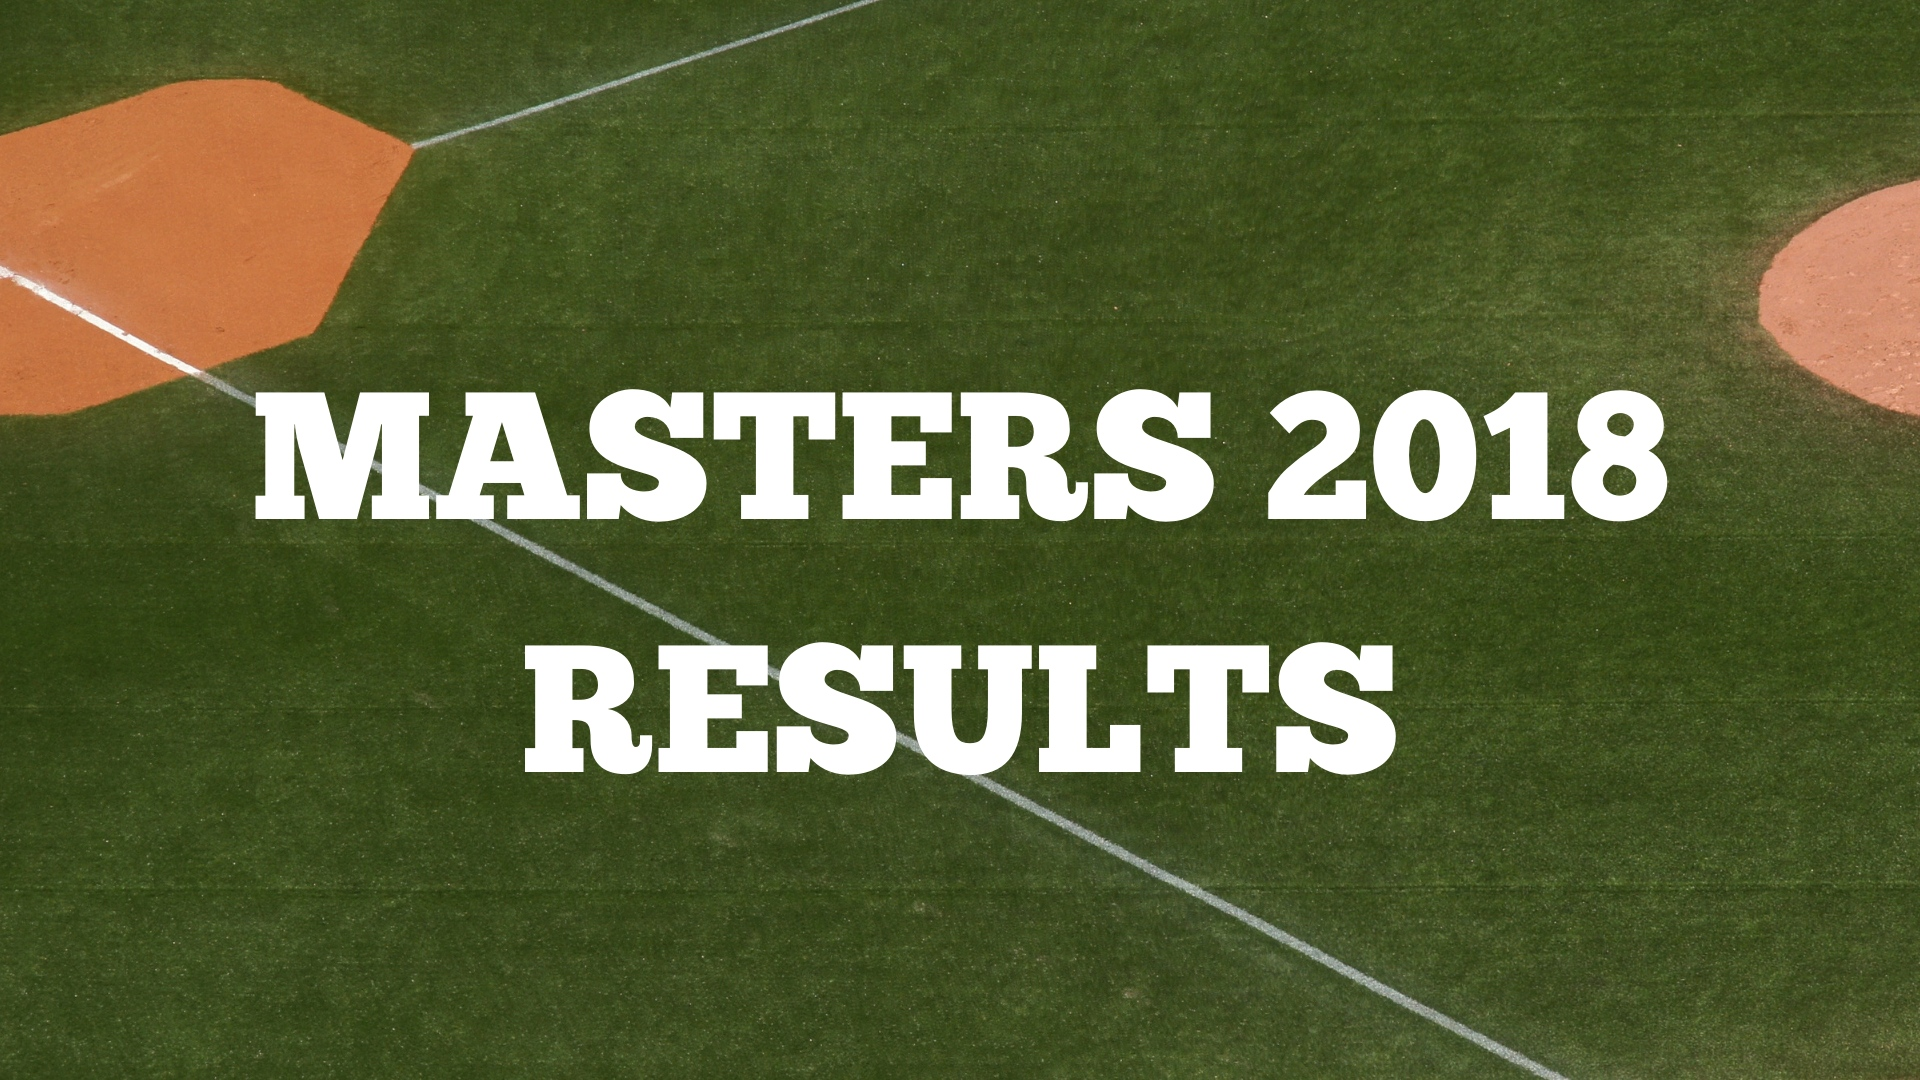 Masters 2018 Results